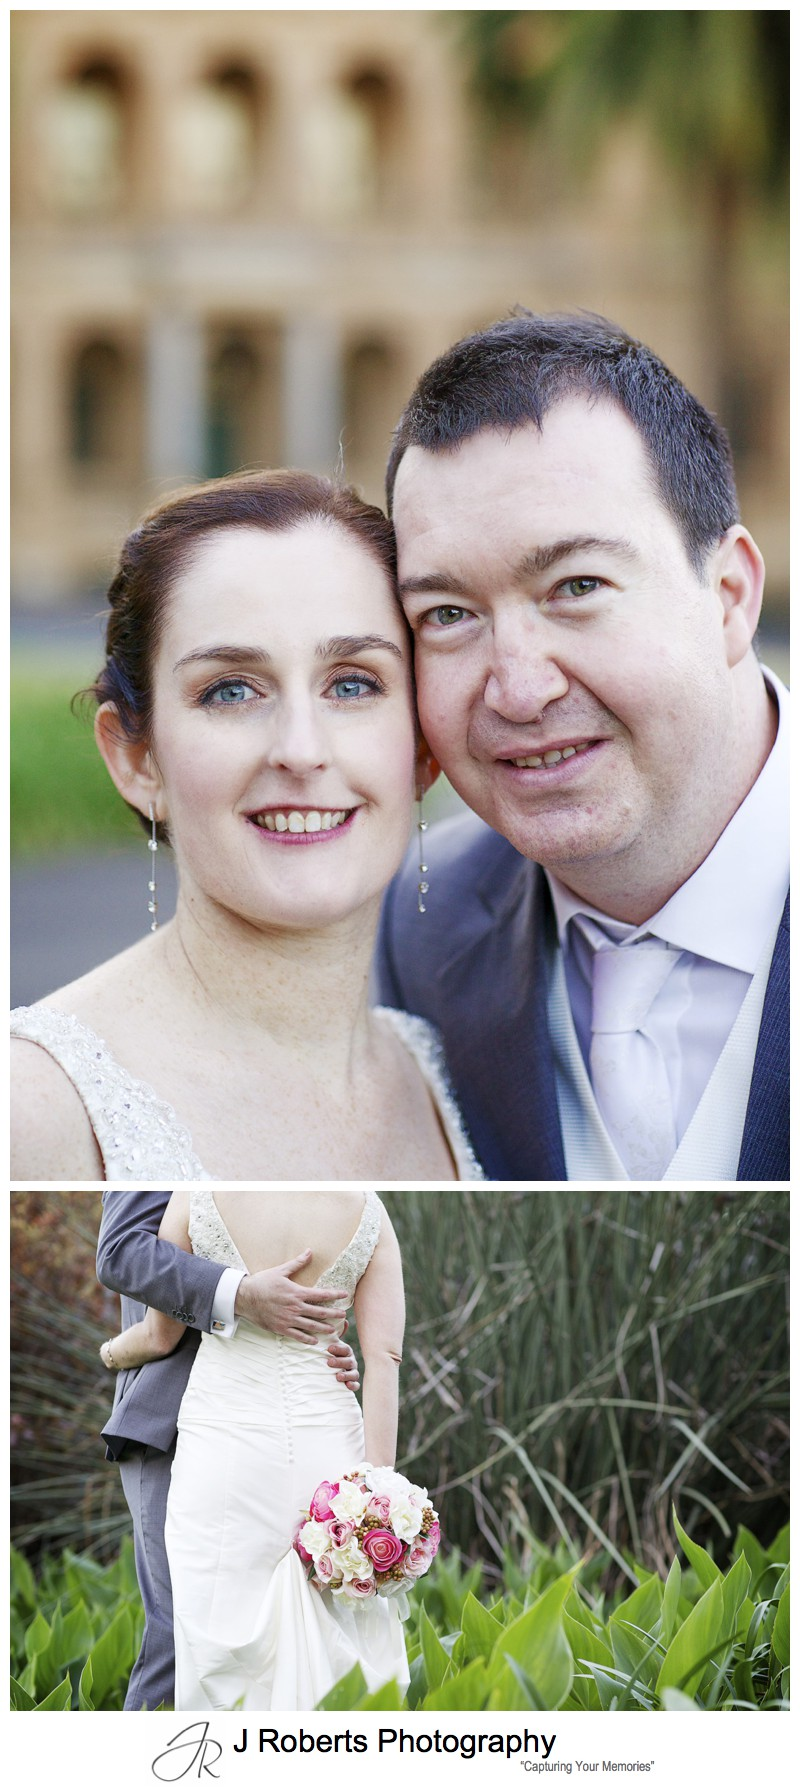 Portrait of a bride and groom - sydney wedding photography